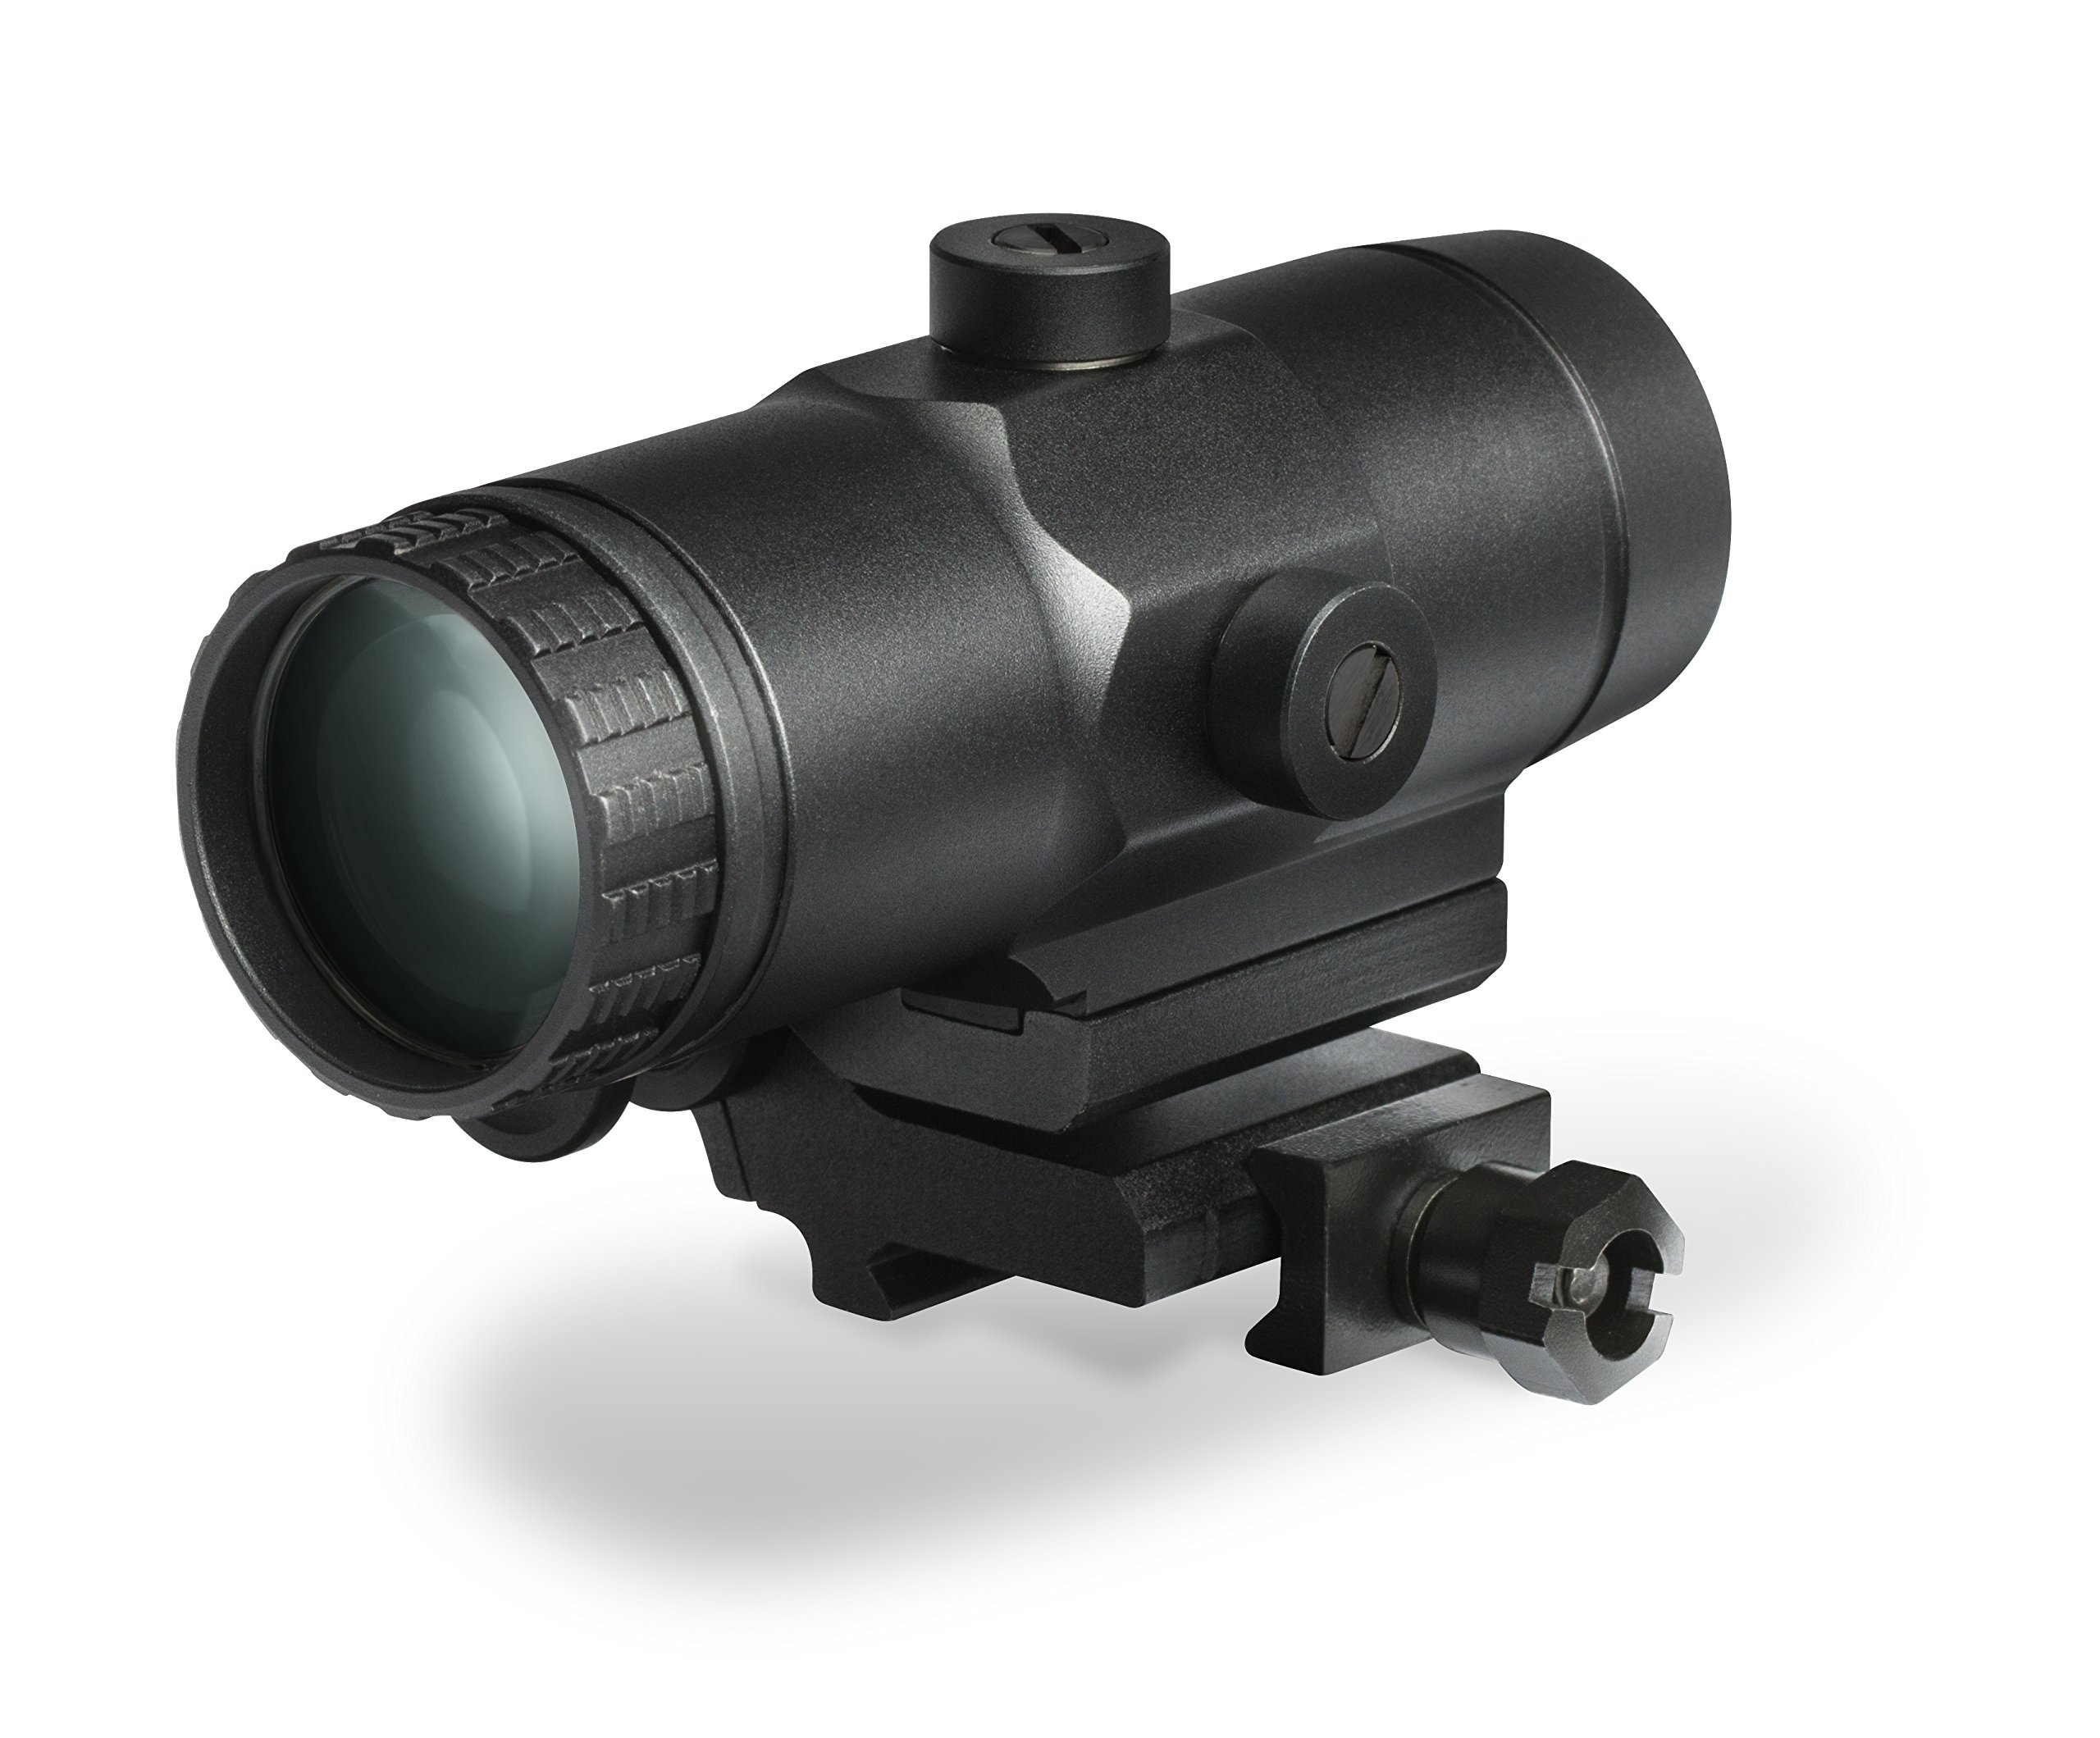 Vortex Optics VMX-3T Magnifier with Built-In Flip Mount